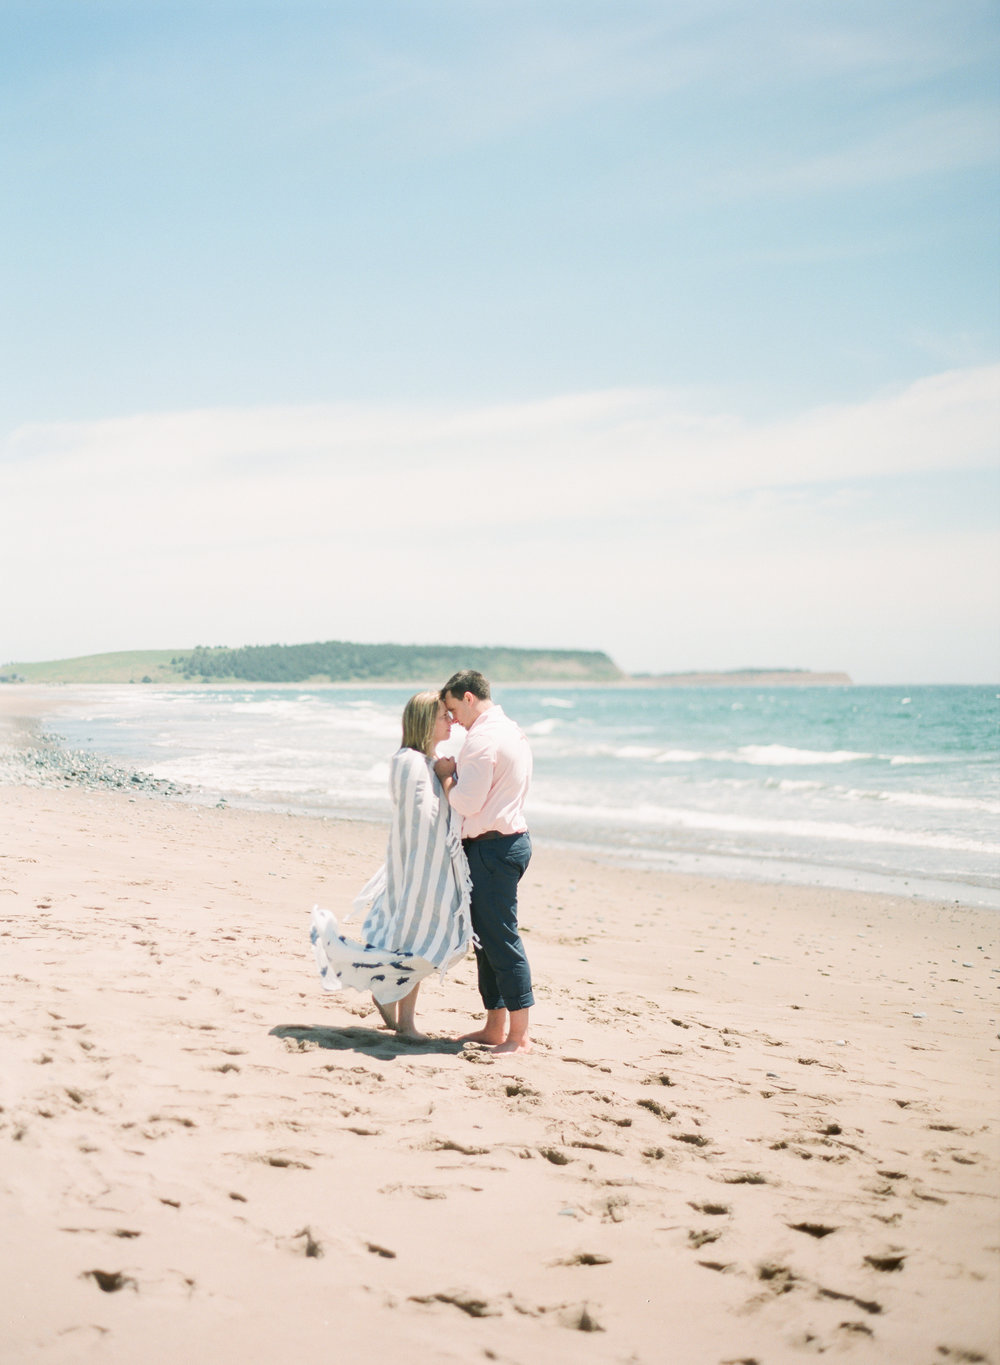 Jacqueline Anne Photography-Melissa and Daniel - Contax 645 - Beach Full Sun-13.jpg